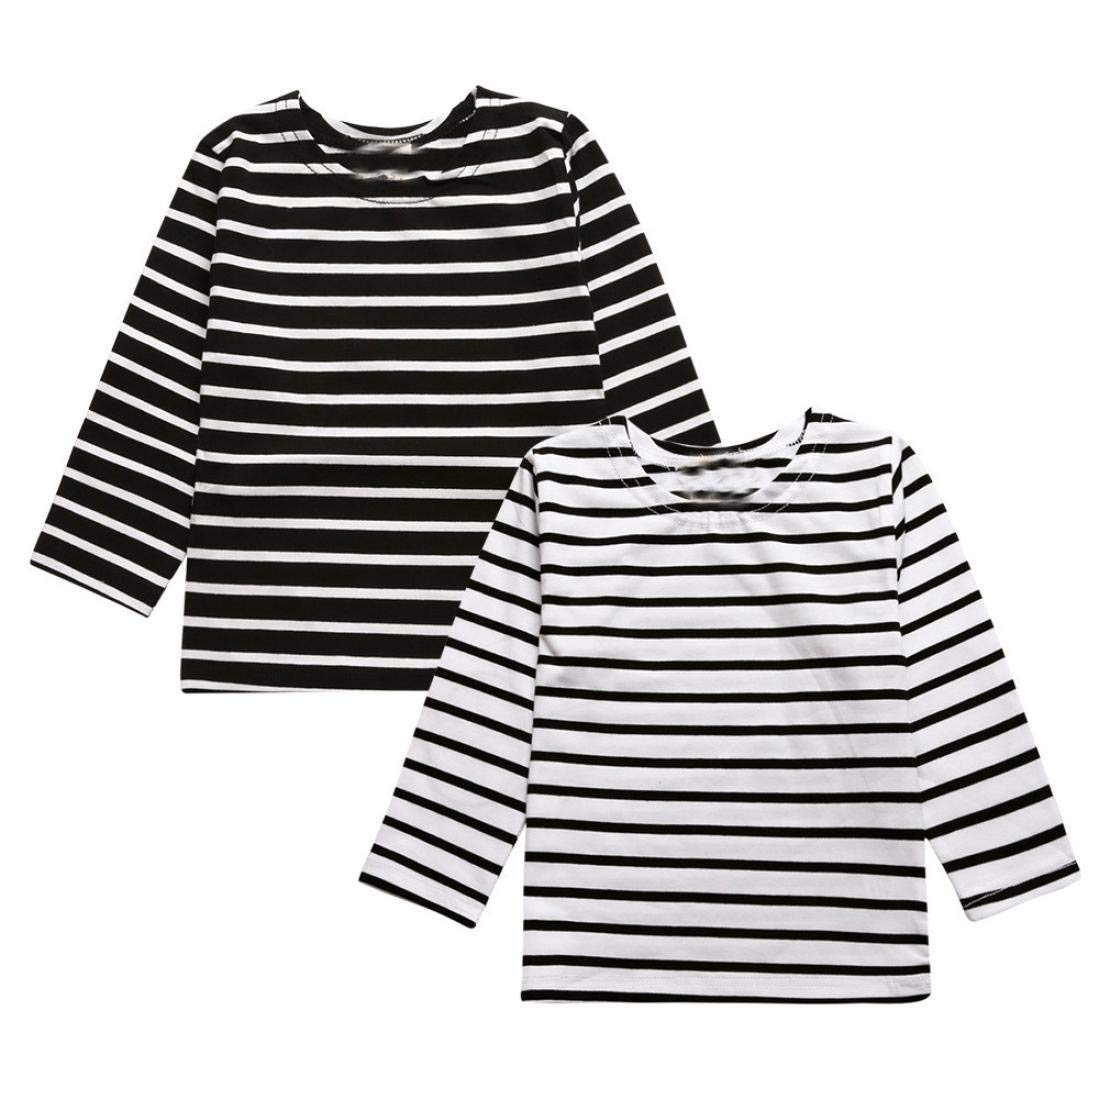 Gotd Infant Toddler Boy Girl Long Sleeve Striated Star T-Shirt Tops Clothes